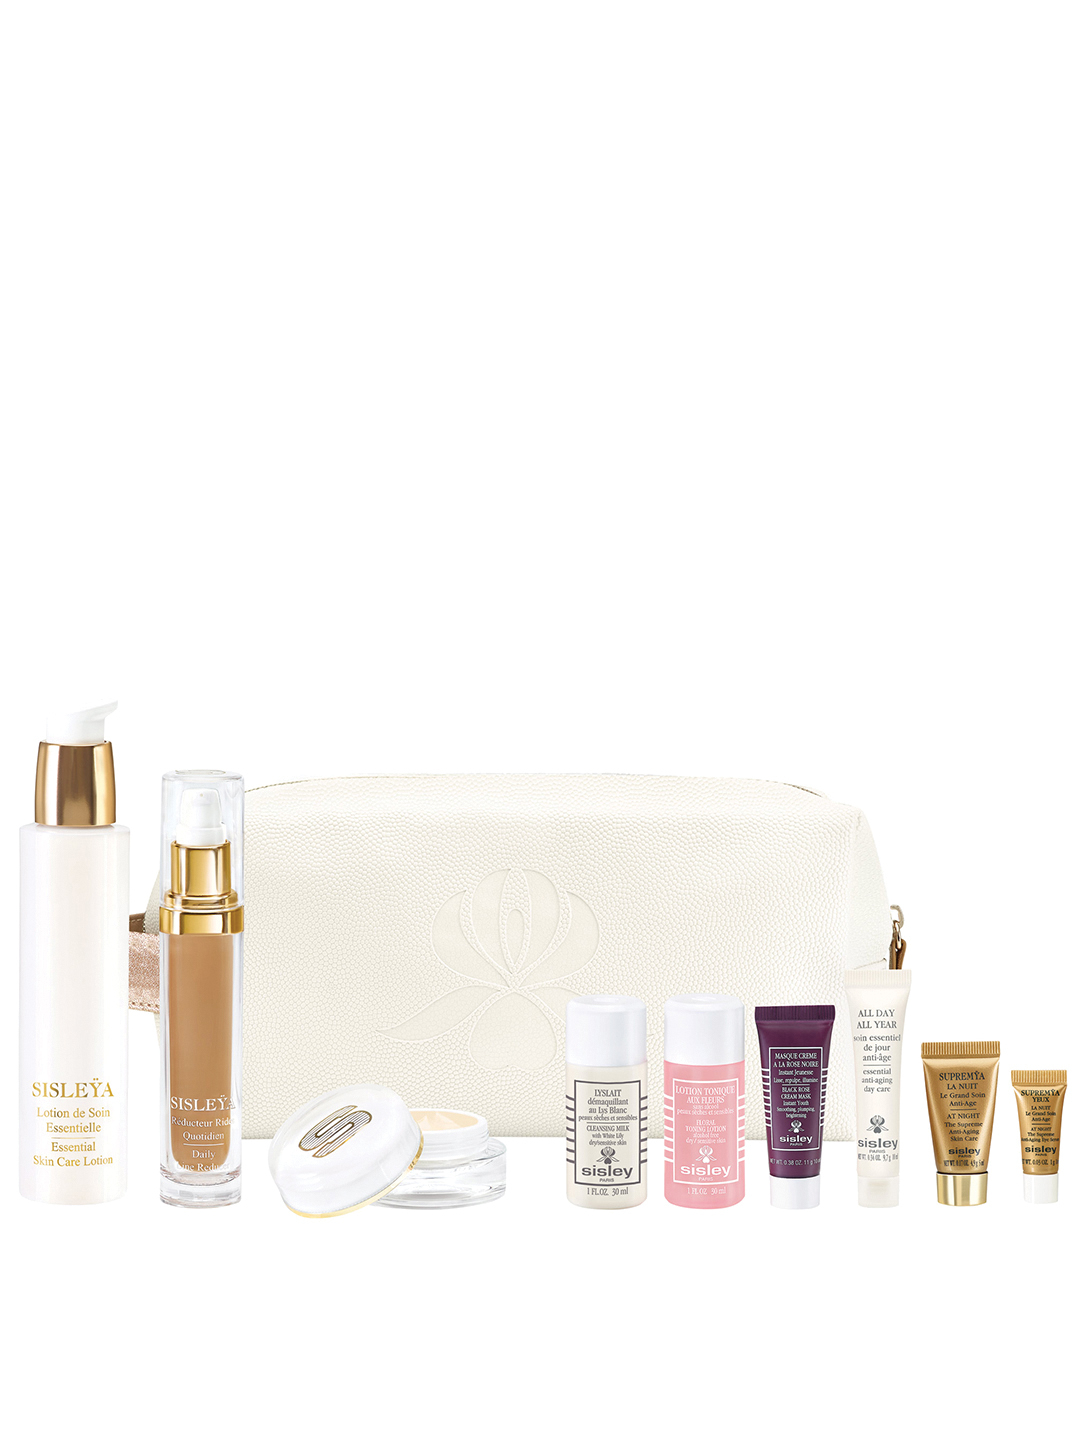 SISLEY-PARIS Sisleÿa Global Anti-Aging Program Prestige Set Beauty